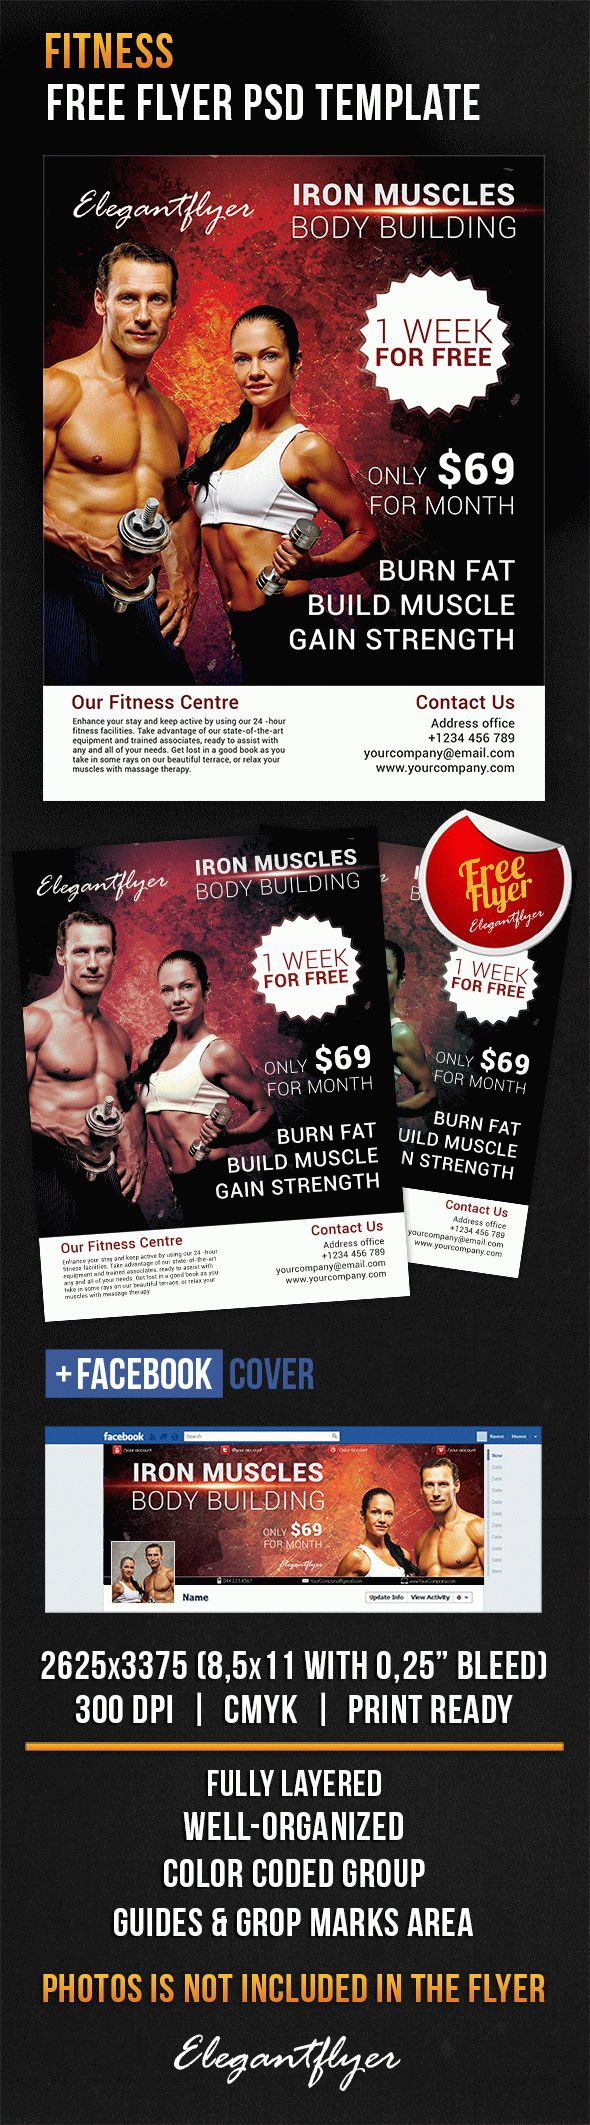 Fitness Flyer – Free PSD Flyer Template